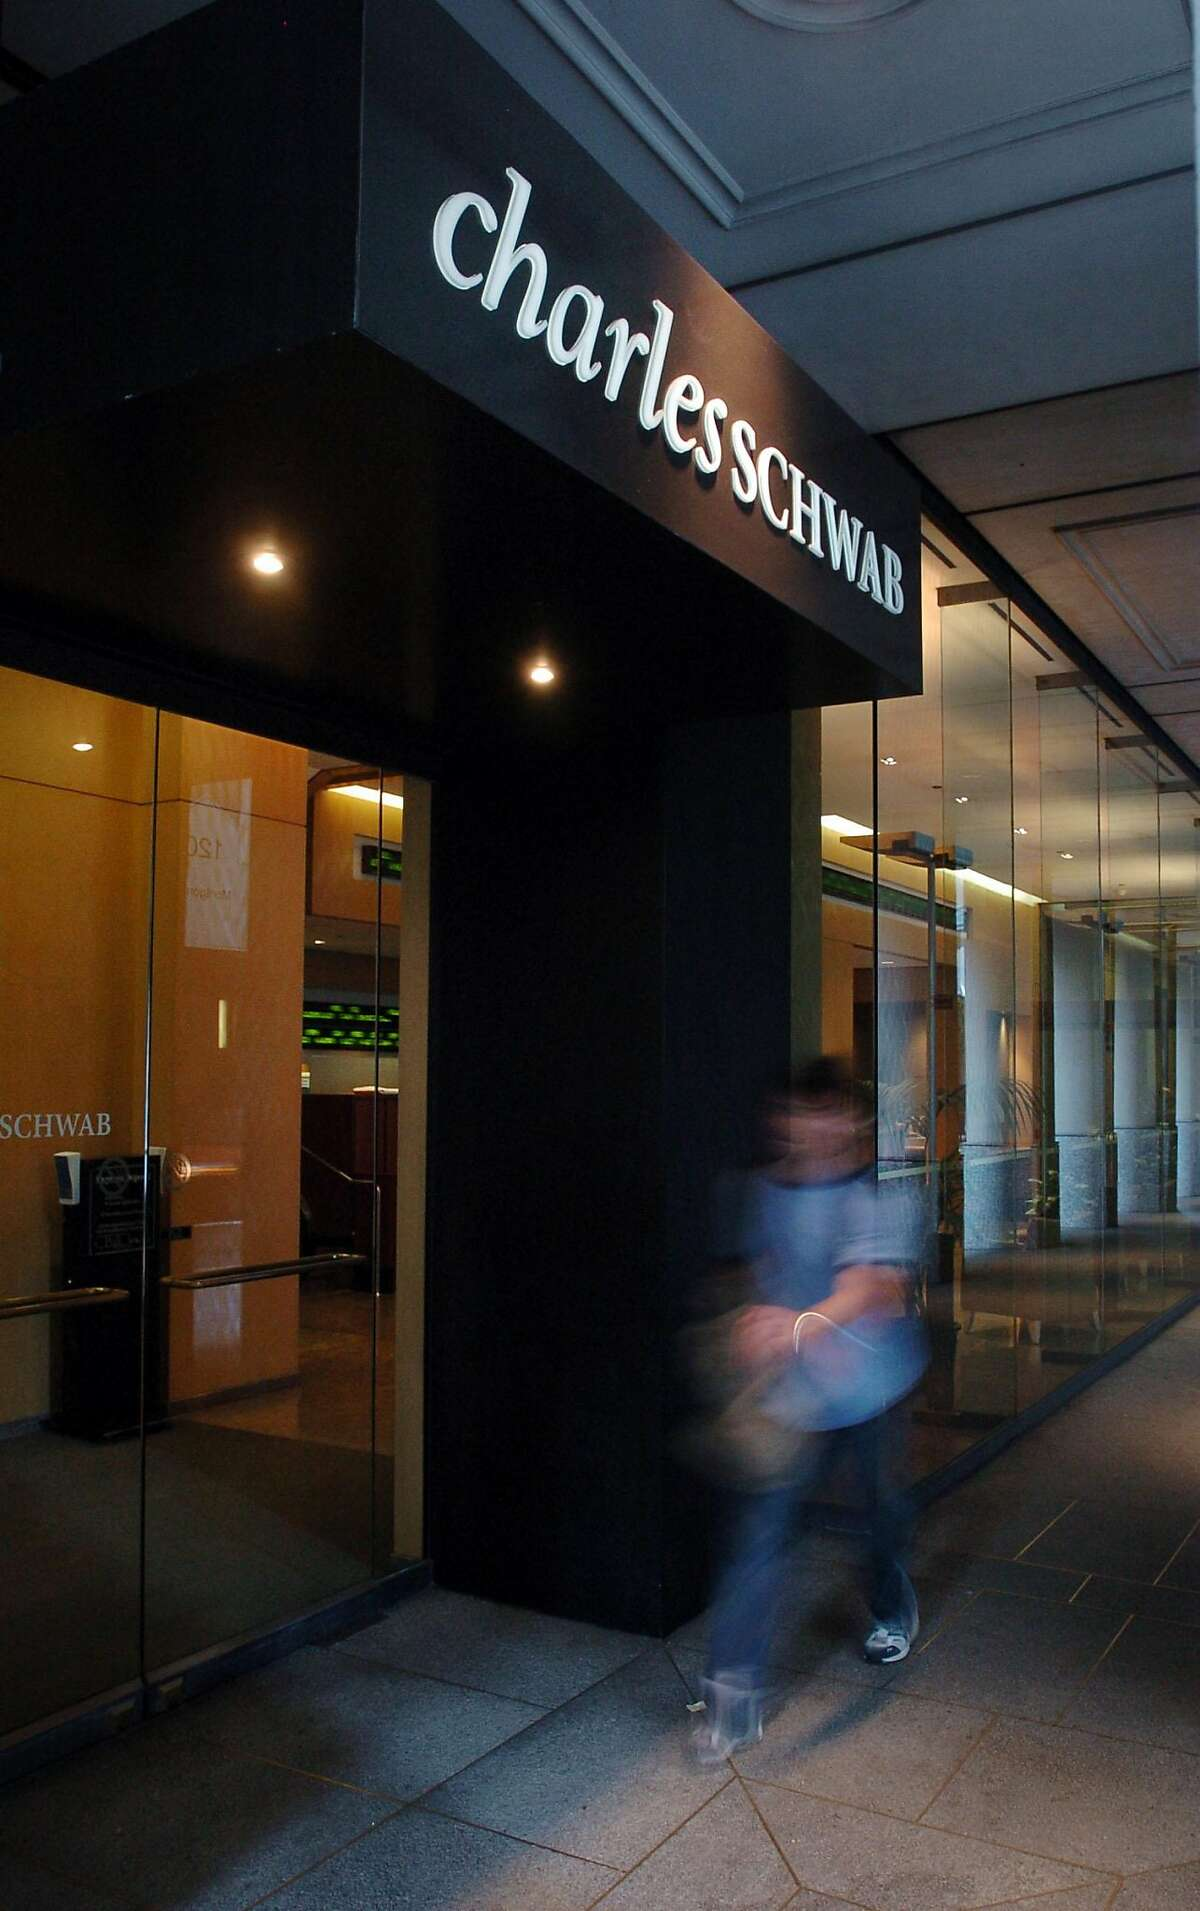 A pedestrian walks past the entrance to a Charles Schwab branch in San Francisco on Monday Oct. 17, 2005. San Francisco-based Charles Schwab Corp.'s quarterly profit surged above $200 million for the first time since the dot-com boom, continuing a comeback that has been orchestrated by the stock brokerage's founder. (AP Photo/Jakub Mosur)